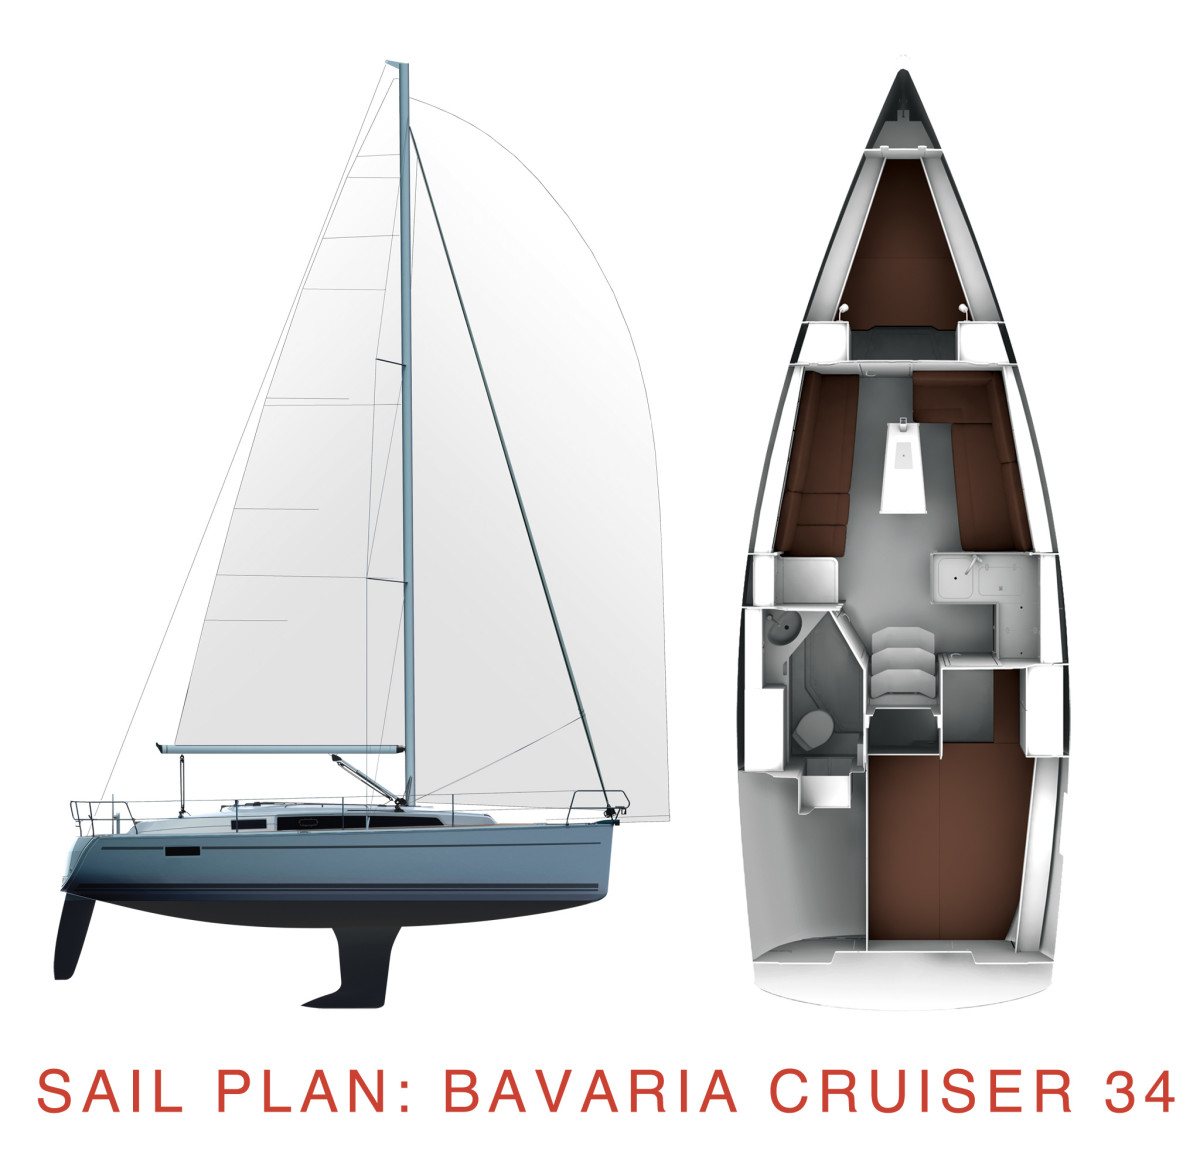 SailPlanBavariaCruiser34